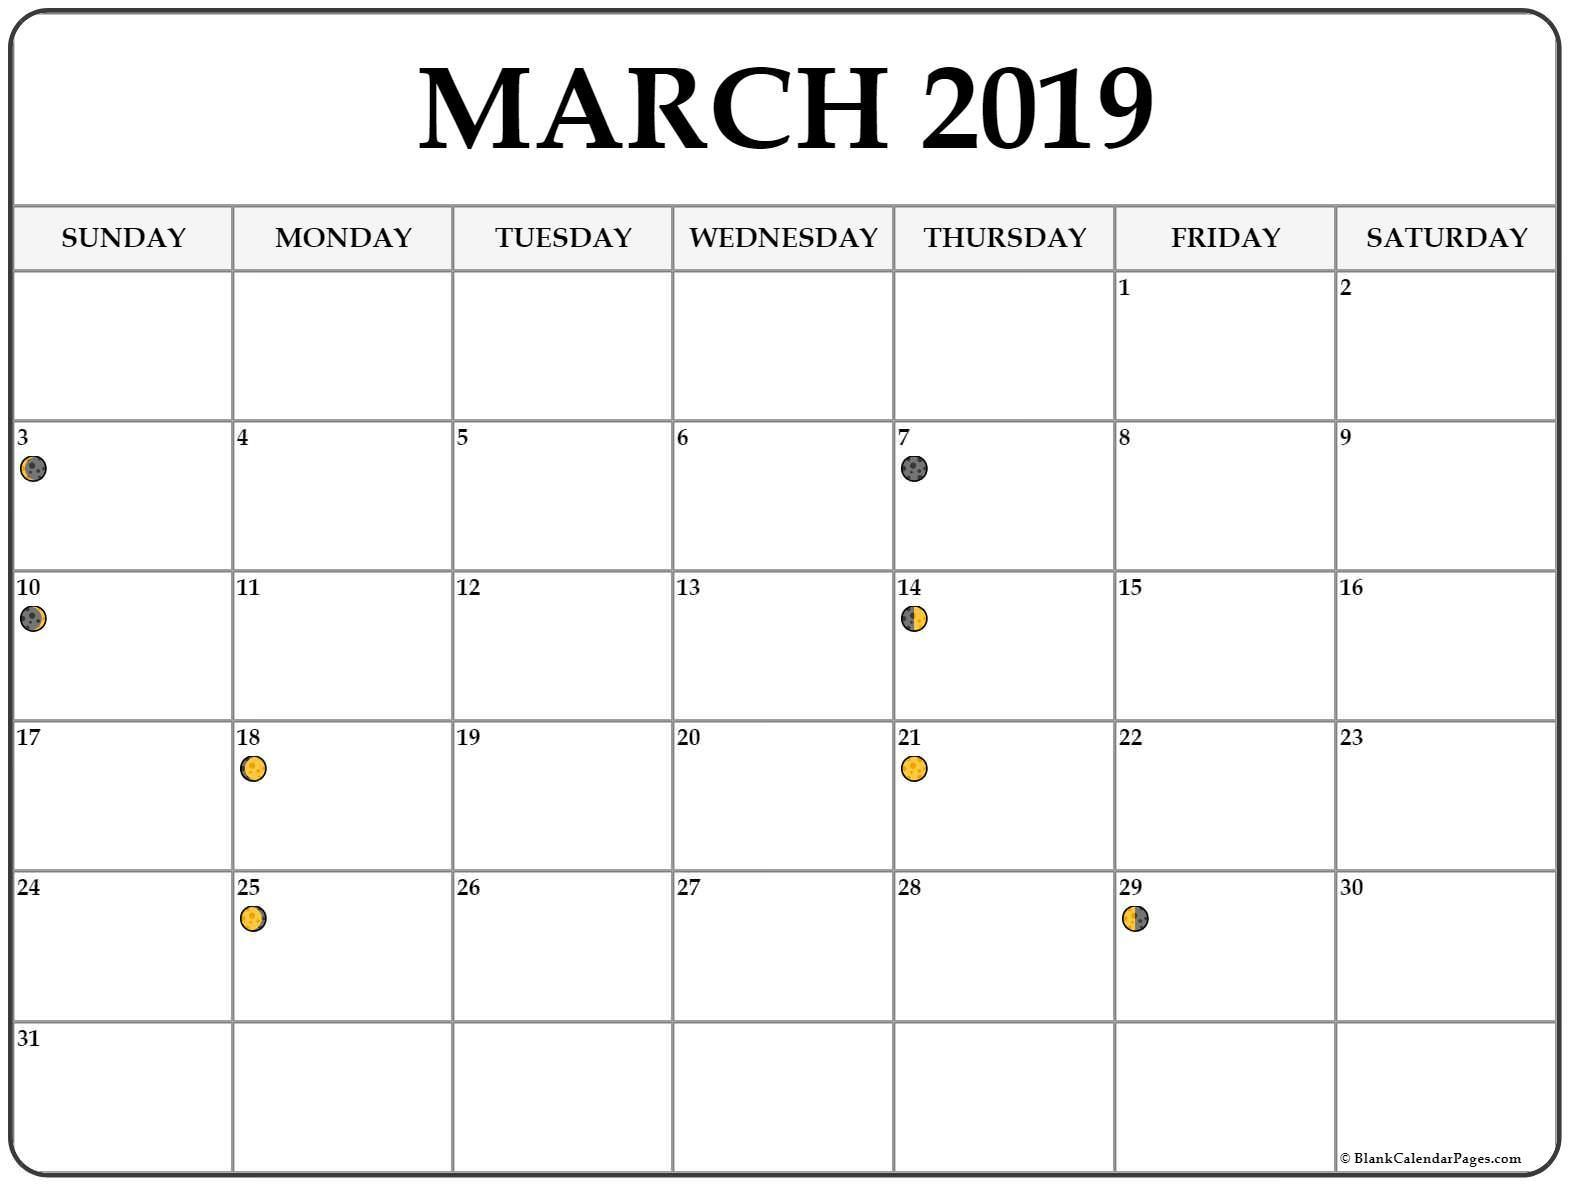 Lunar Phases March 2019 Moon Calendar Calendar Template 2020